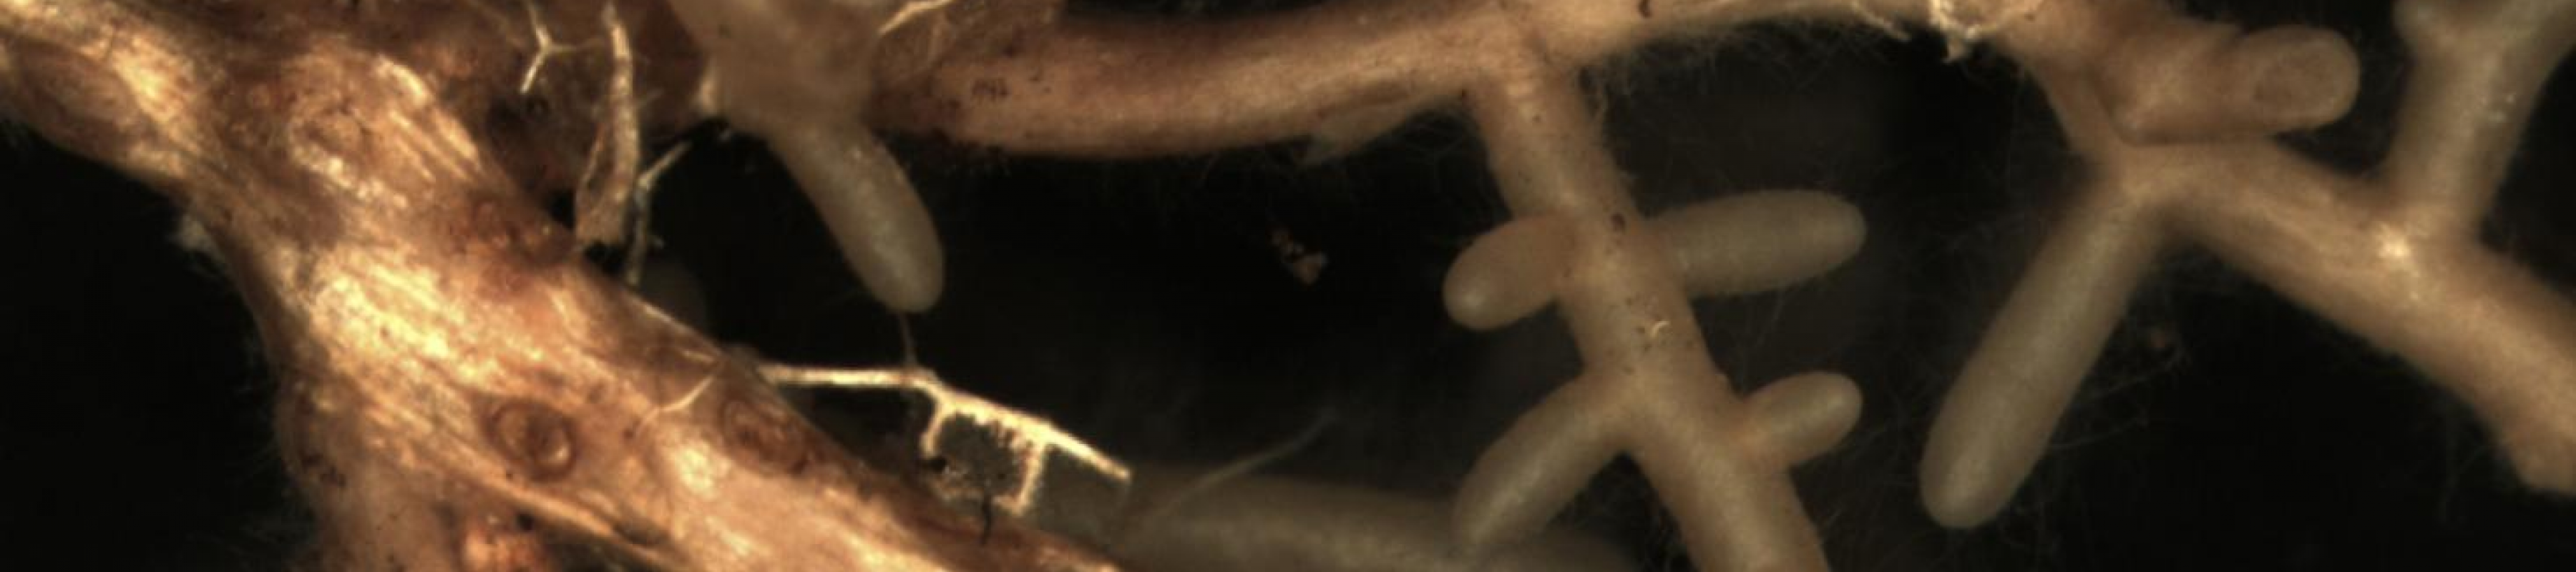 Microscope image of mycorrhizas